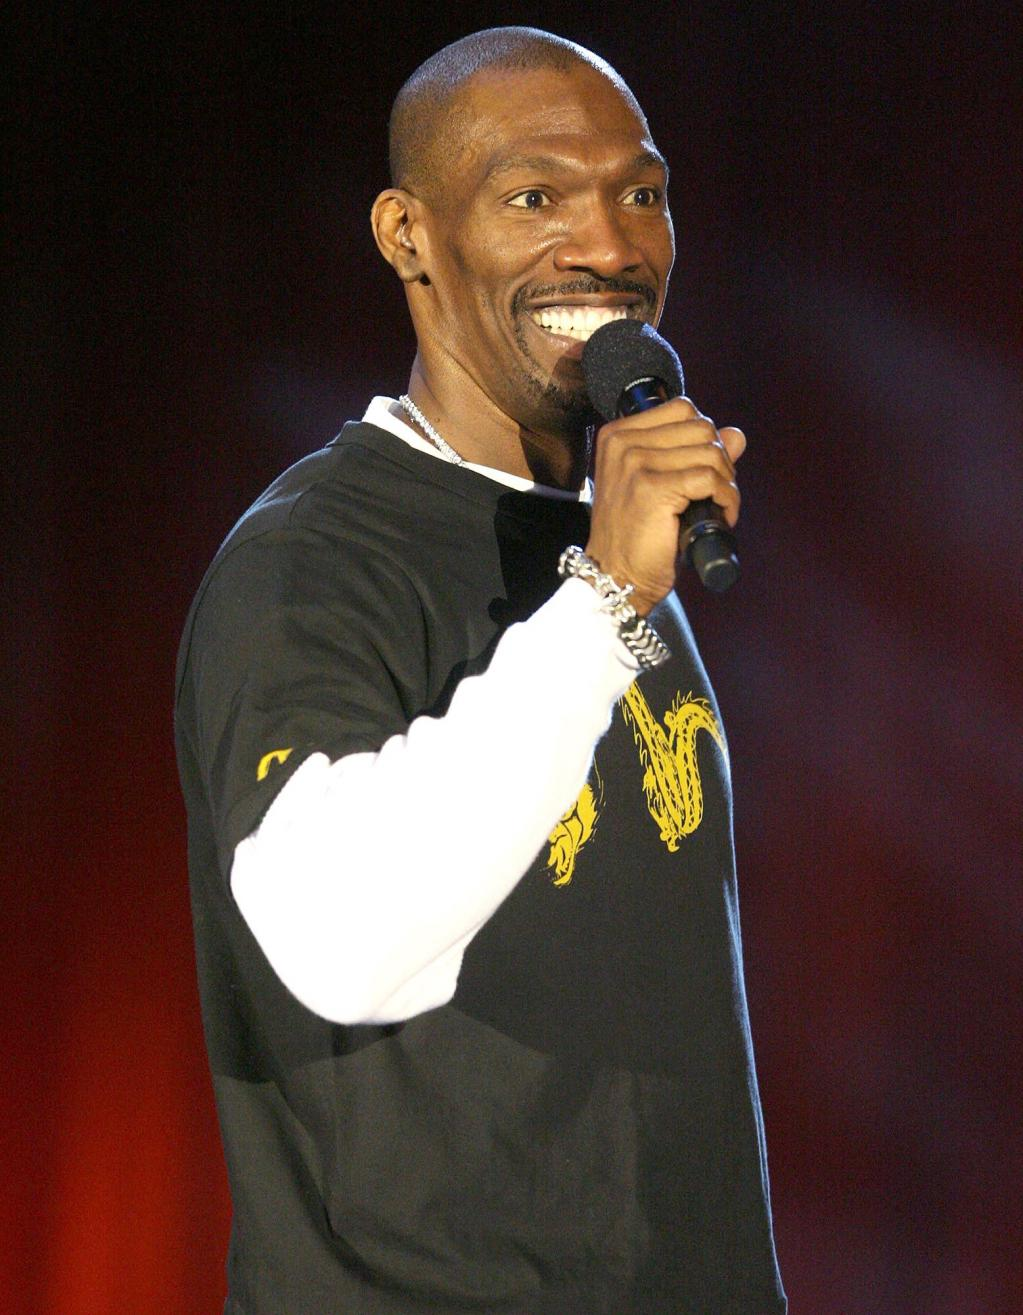 Charlie Murphy, Eddie Murphy's Brother, Dies at 57 After Leukemia Battle: Report